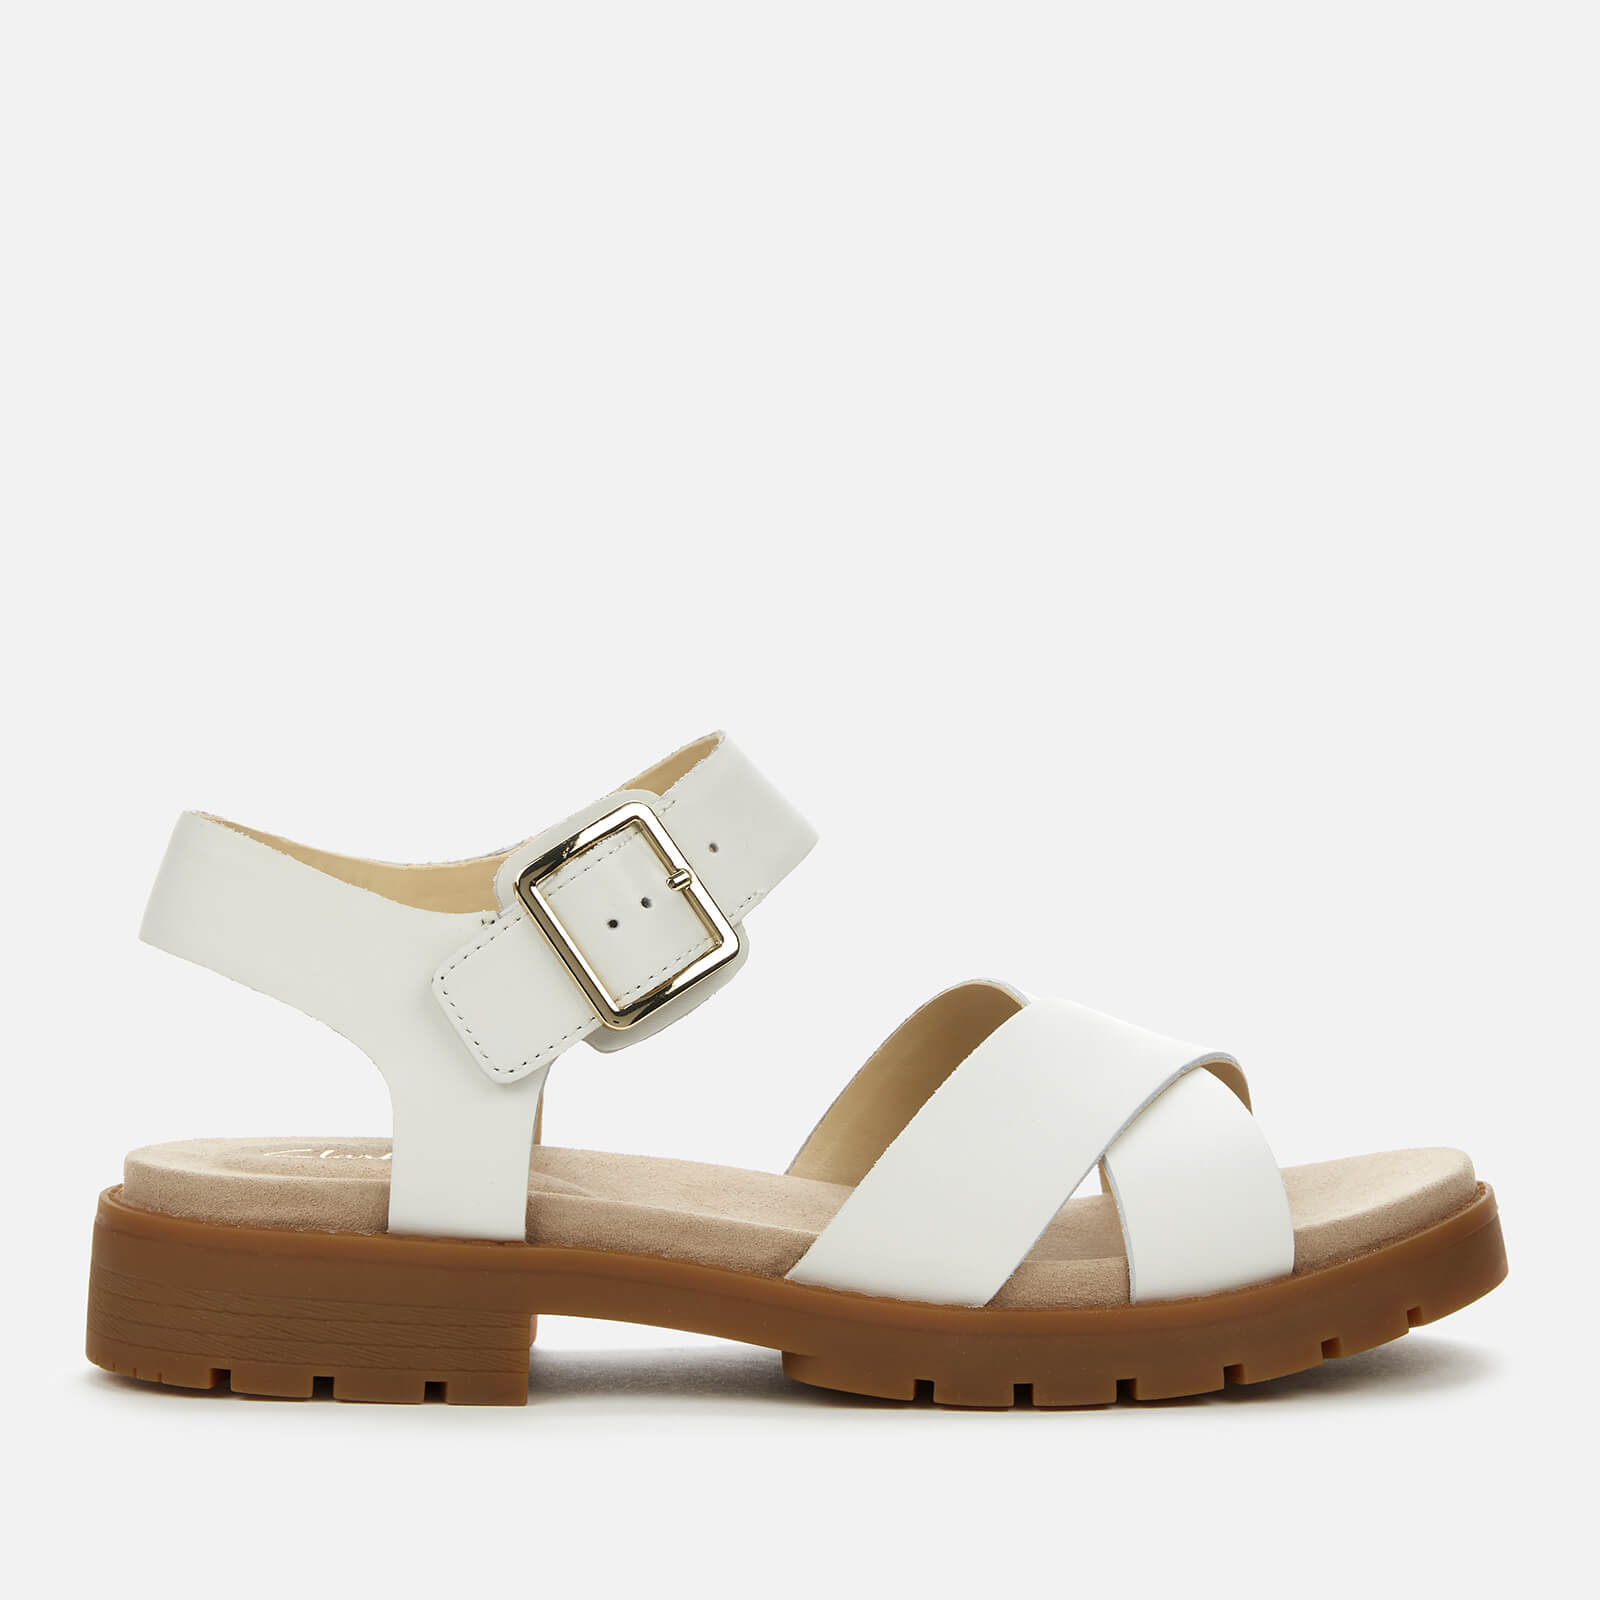 Clarks Women's Orinoco Strap Leather Sandals White